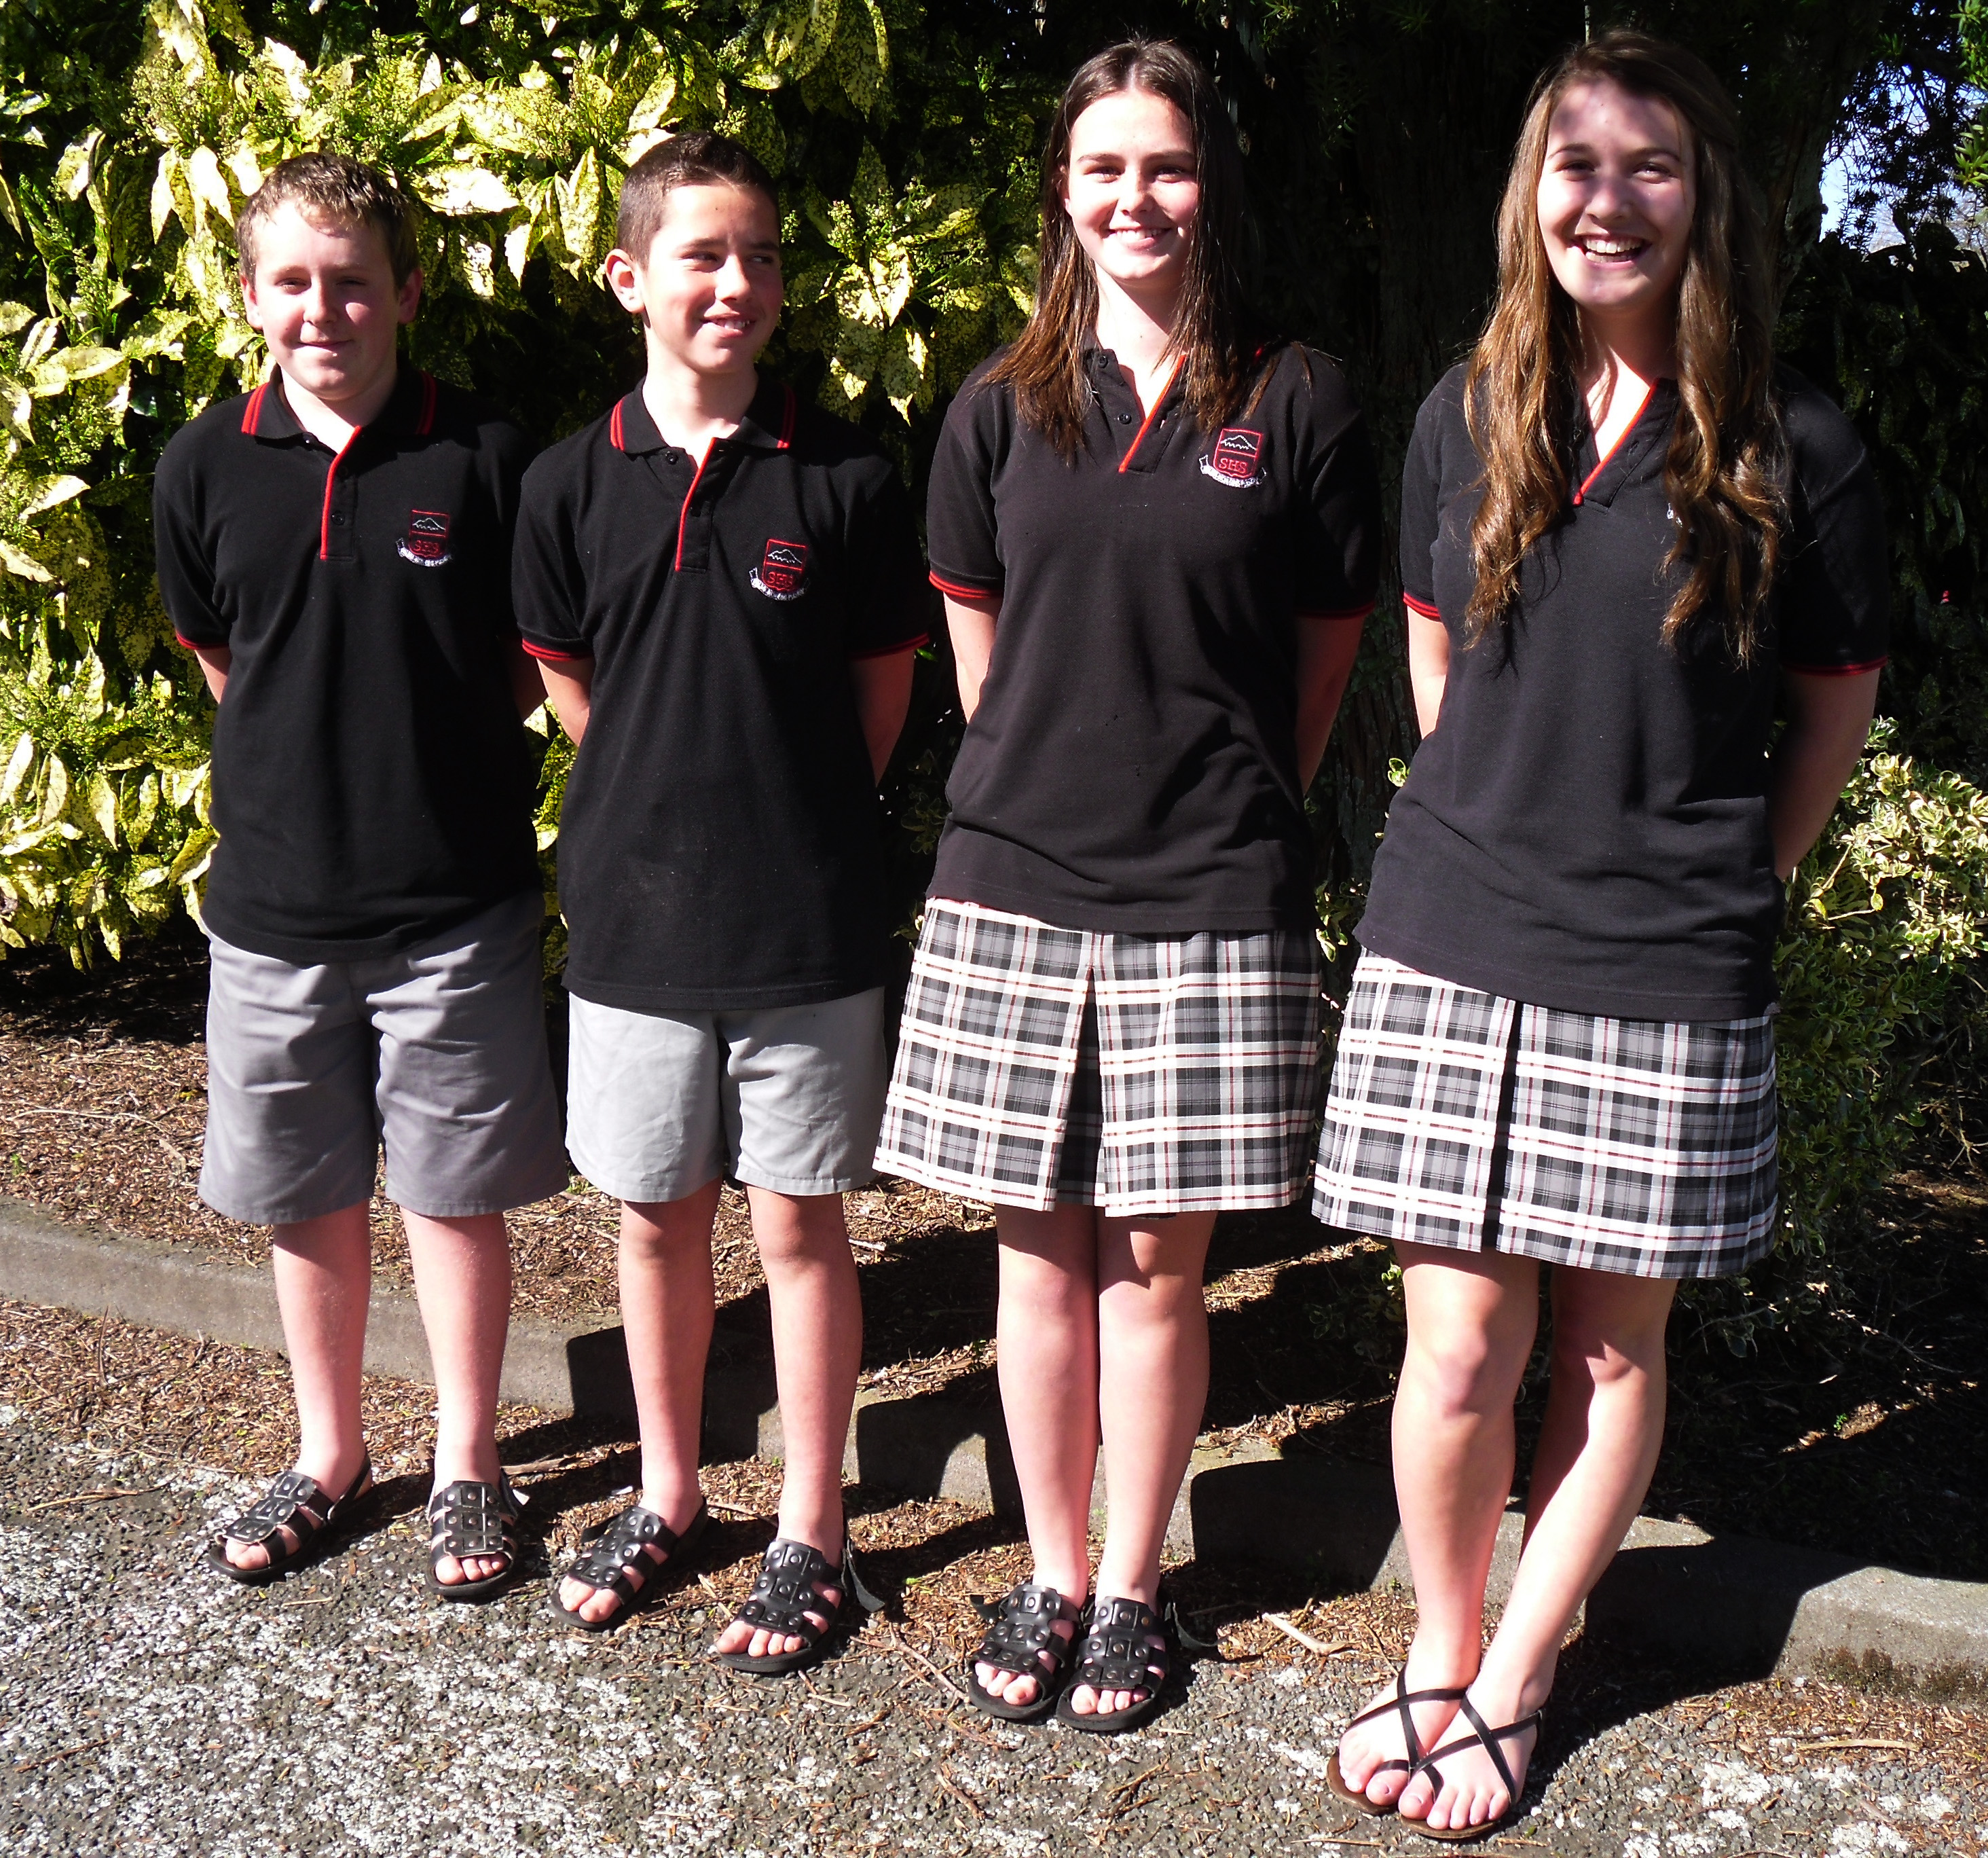 Junior boys and girls winter uniform